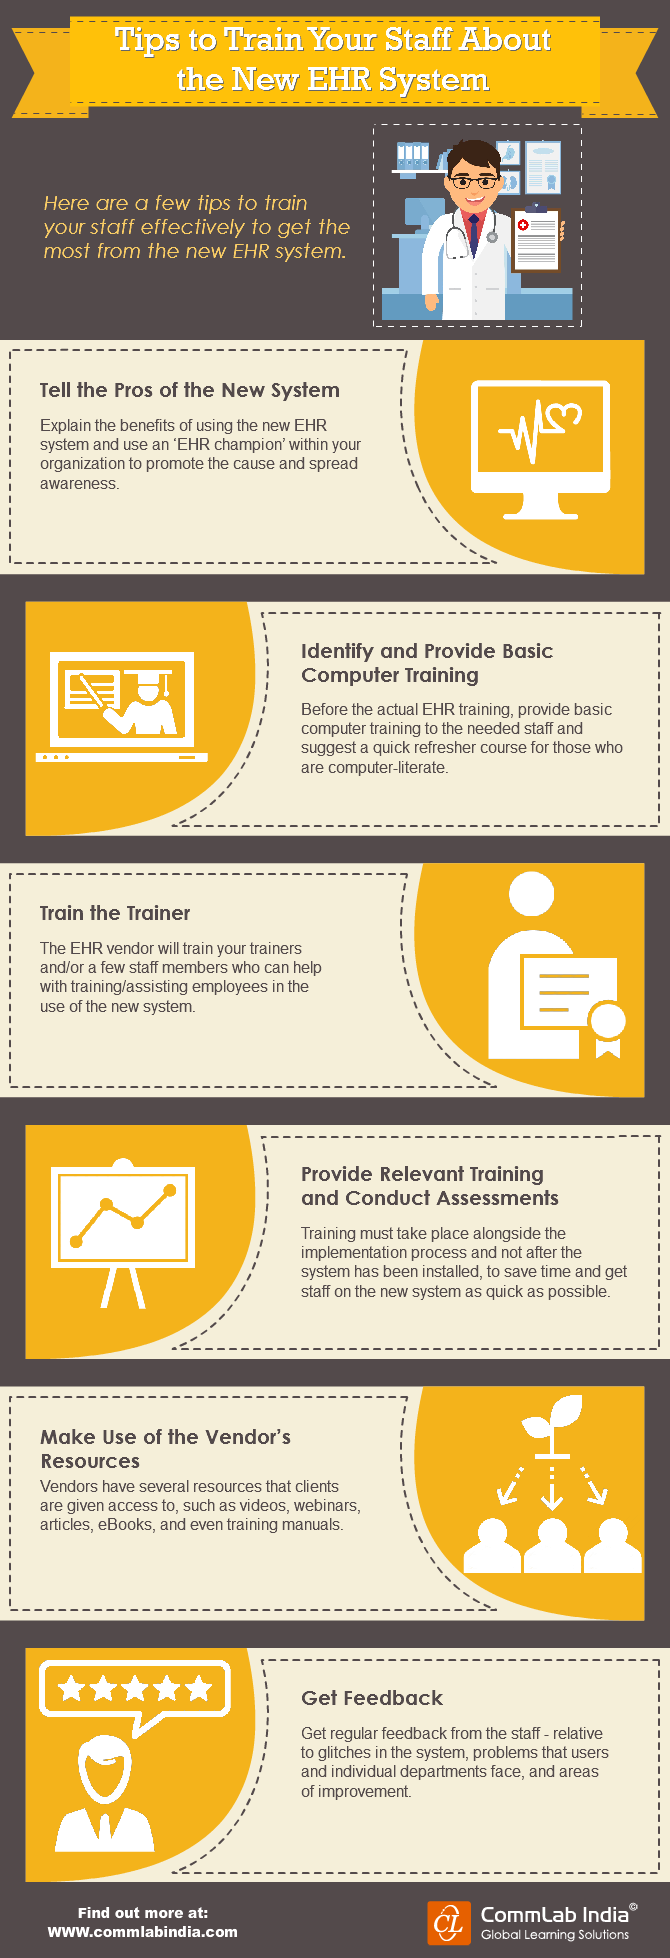 Tips to Train Your Staff about the New EHR System [Infographic]